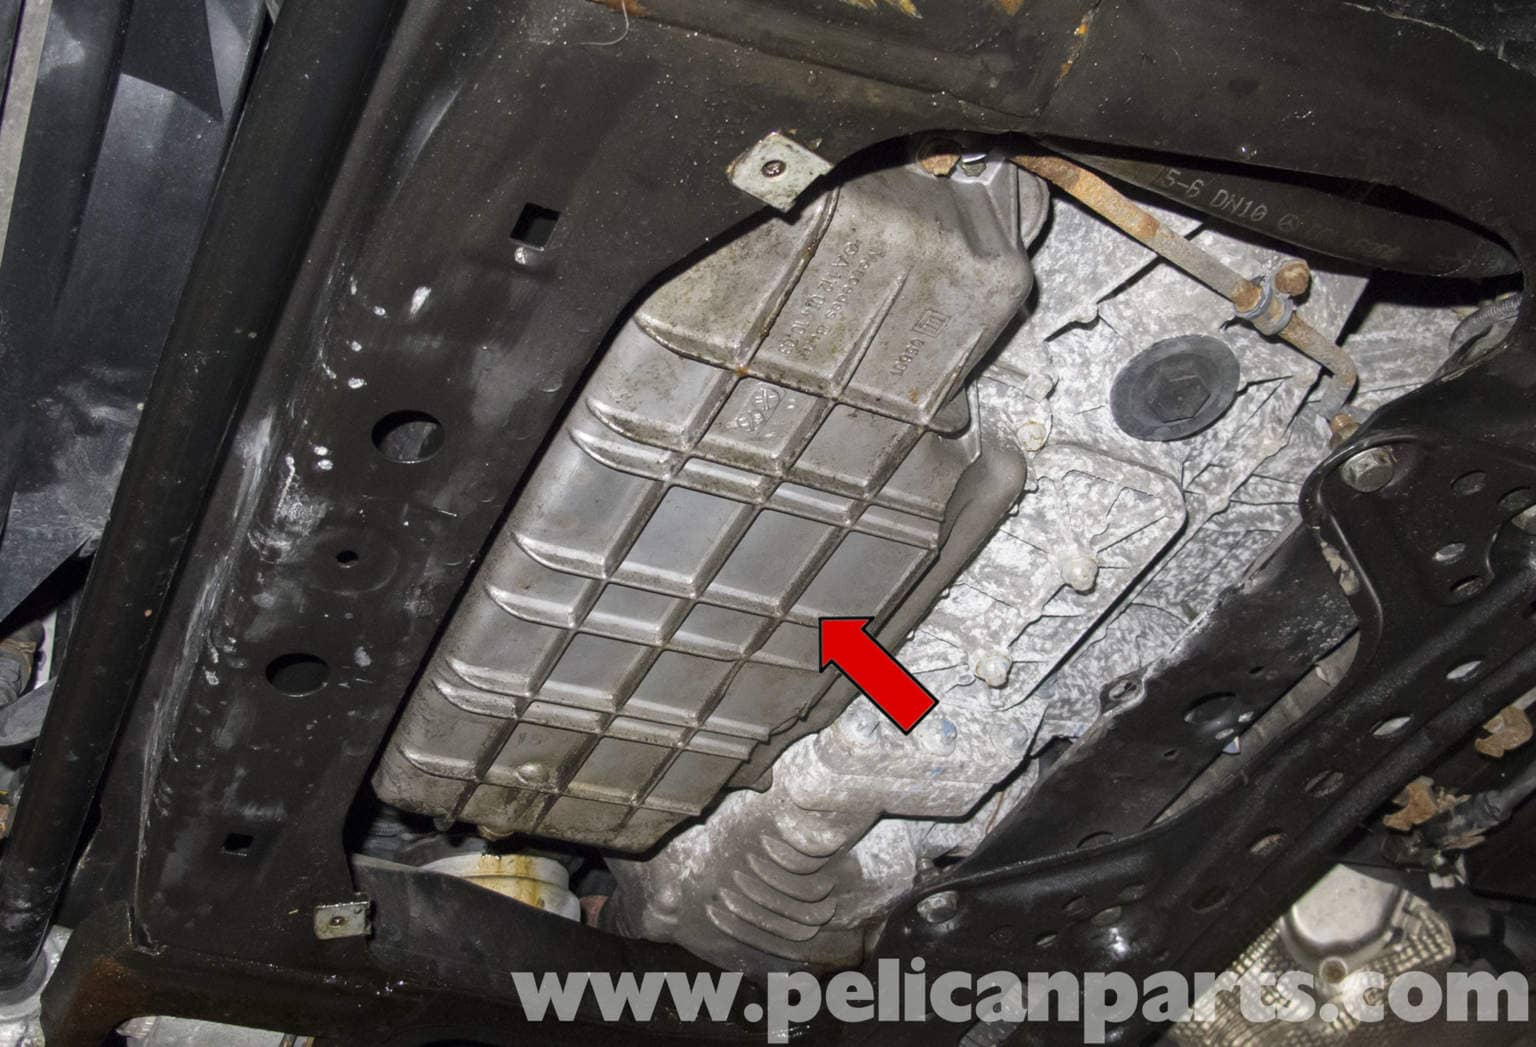 Mercedes Benz W211 Oil Pan Gasket Replacement 2003 2009 E320 Pelican Parts Diy Maintenance